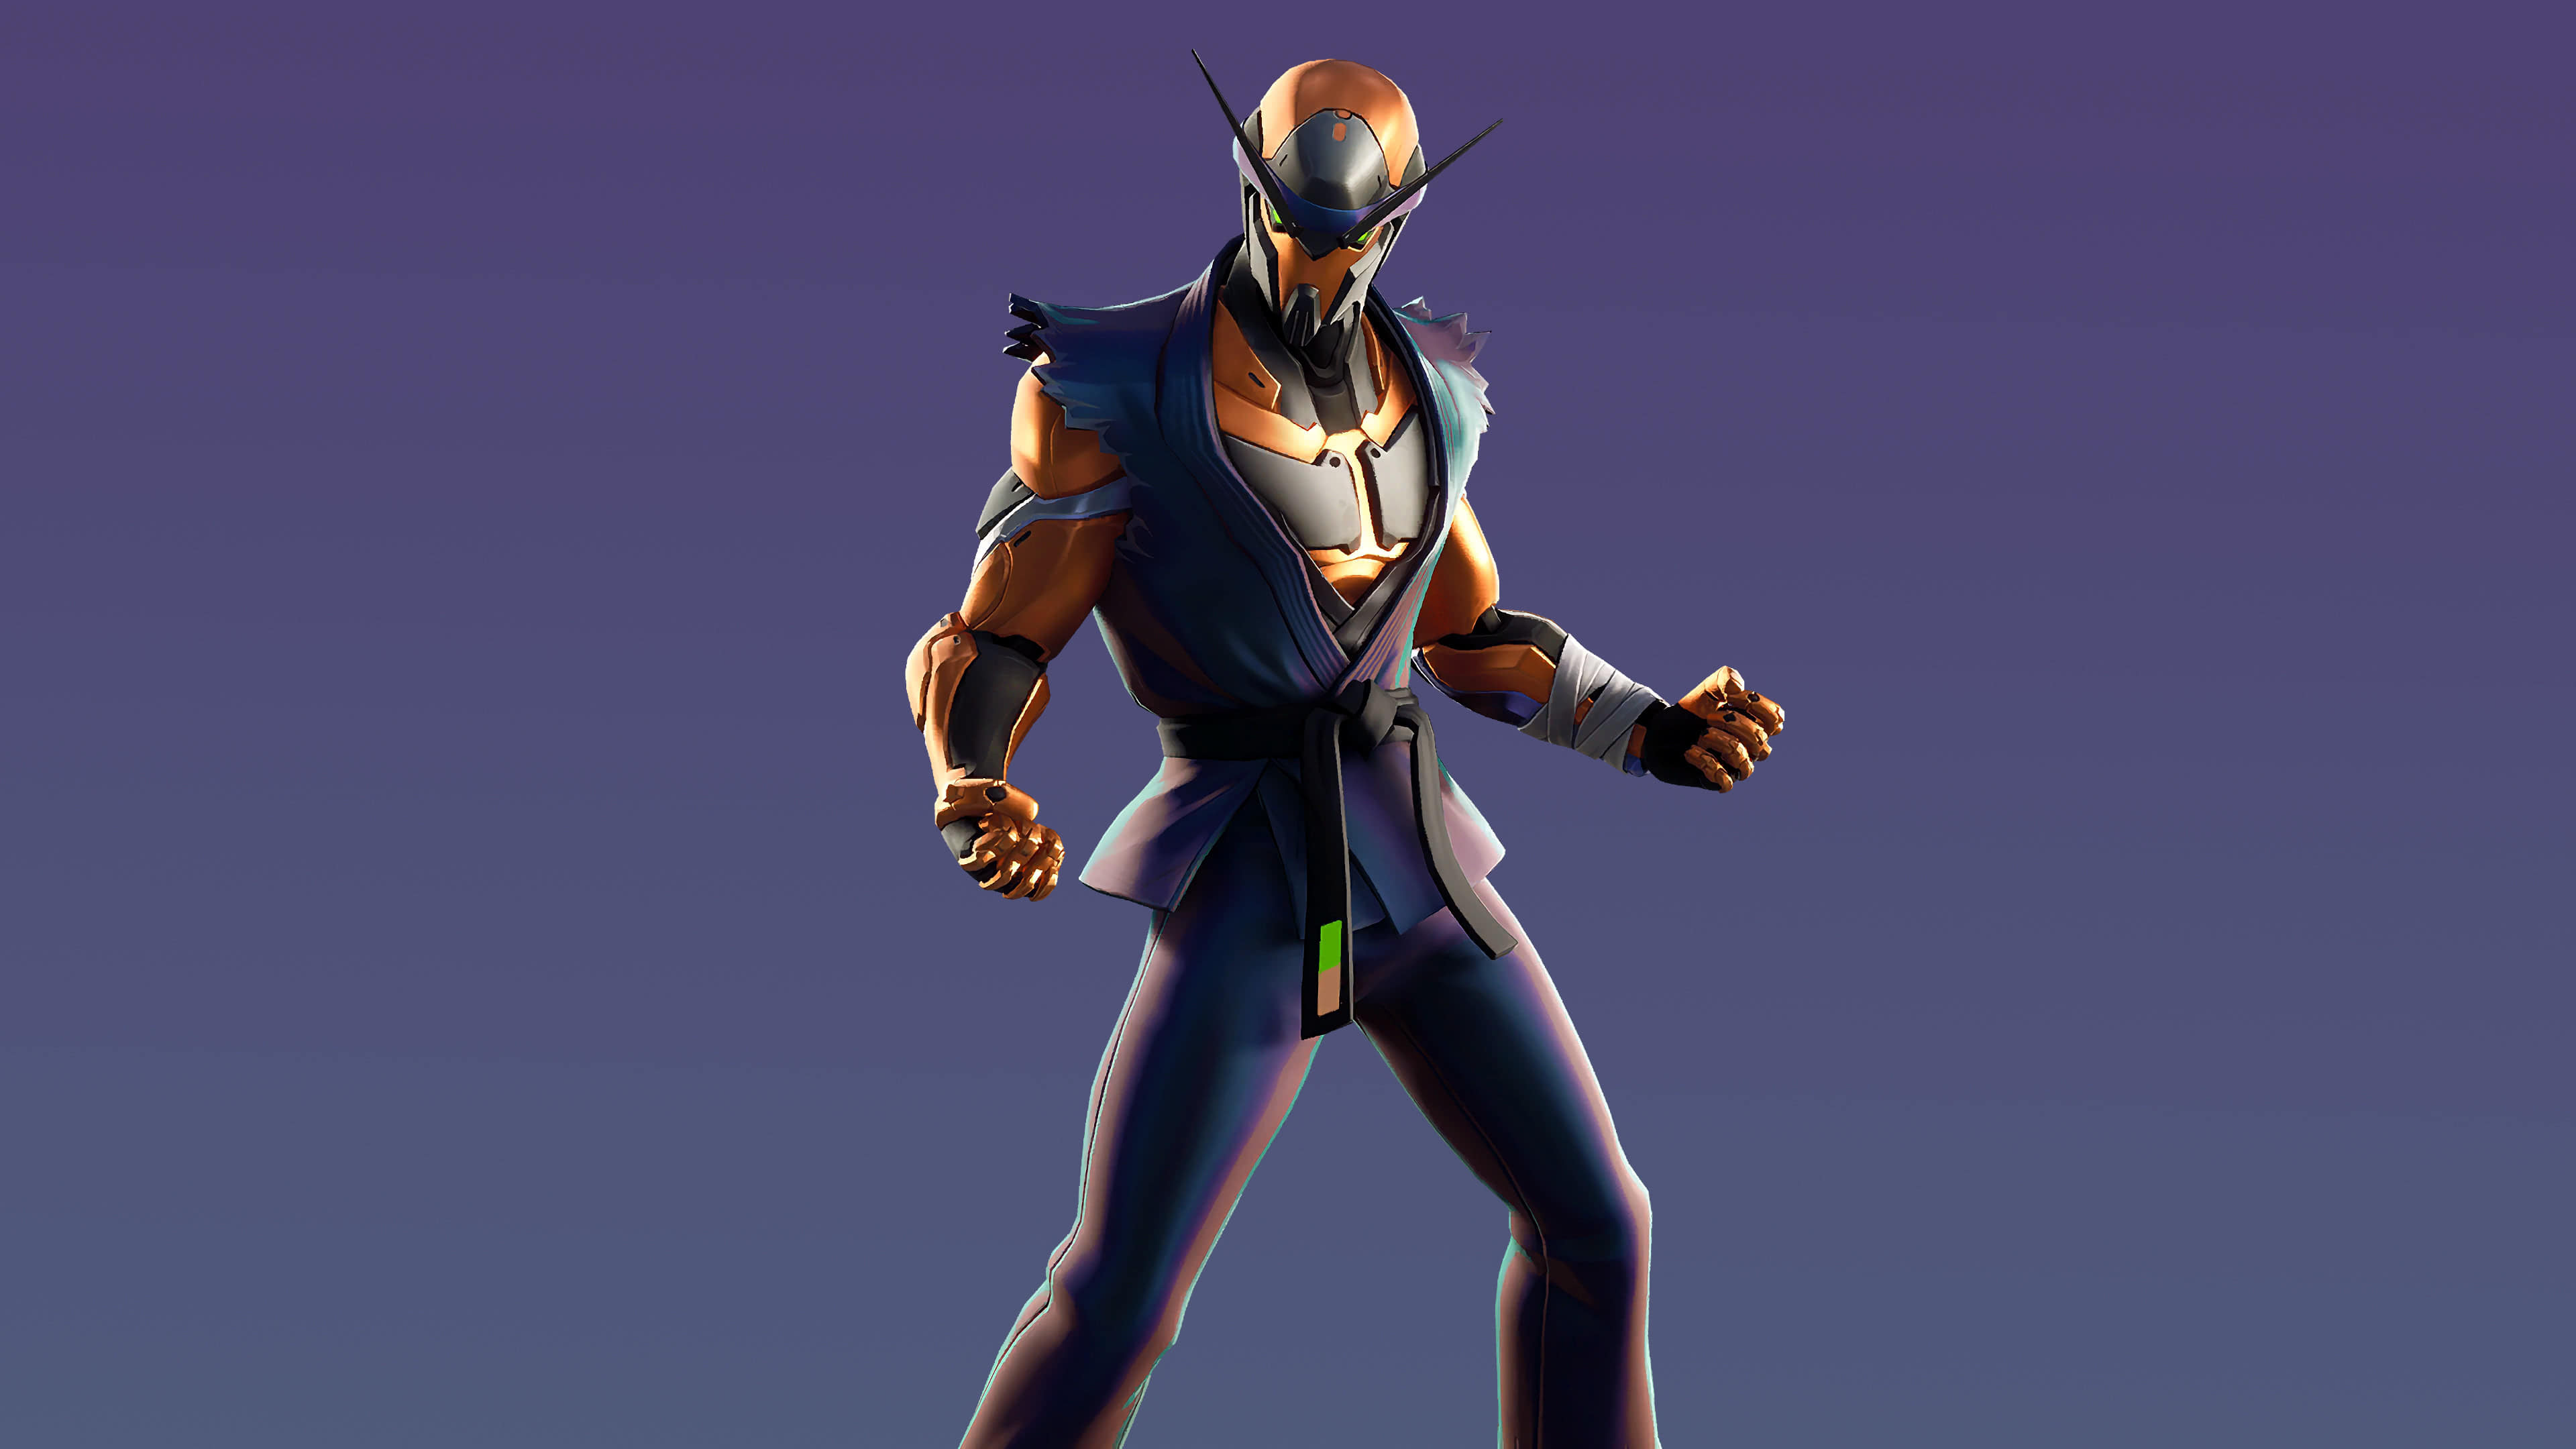 fortnite kata tech set copper wasp skin outfit uhd 4k wallpaper